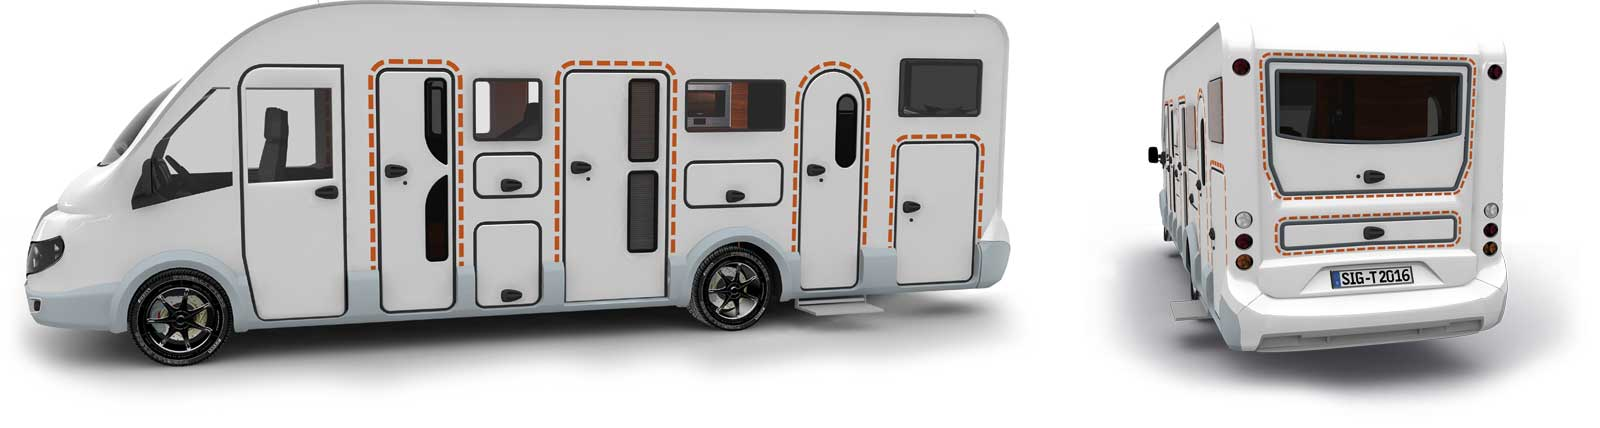 Satisfied tegos customers with Giottiline caravans and RVs